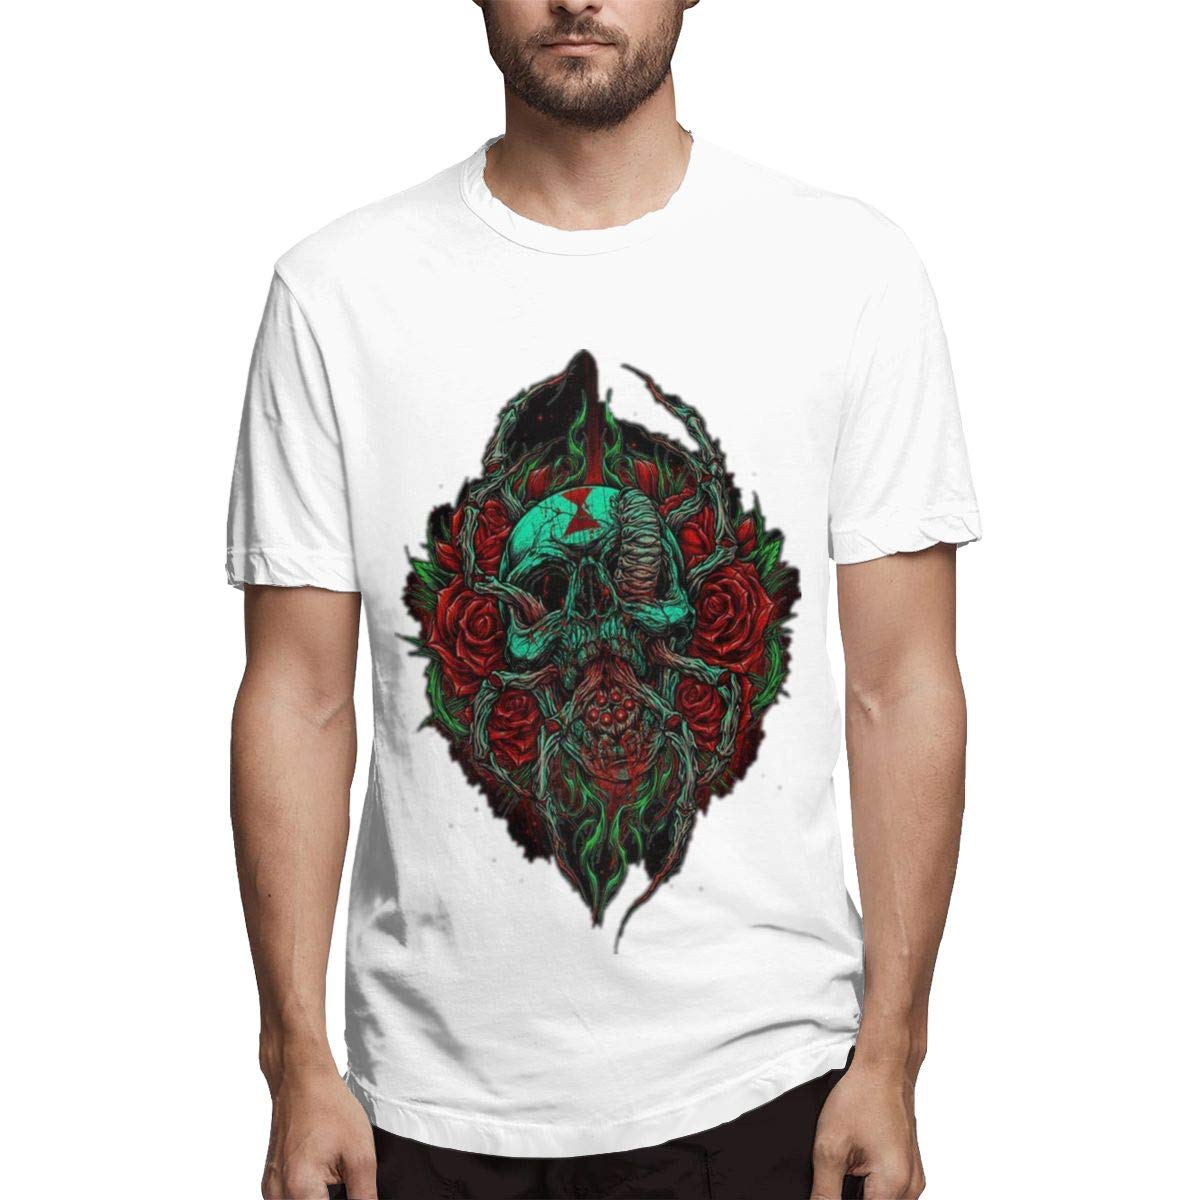 Lihehen Chelsea Grin Simple Casual Round Neck T Shirt